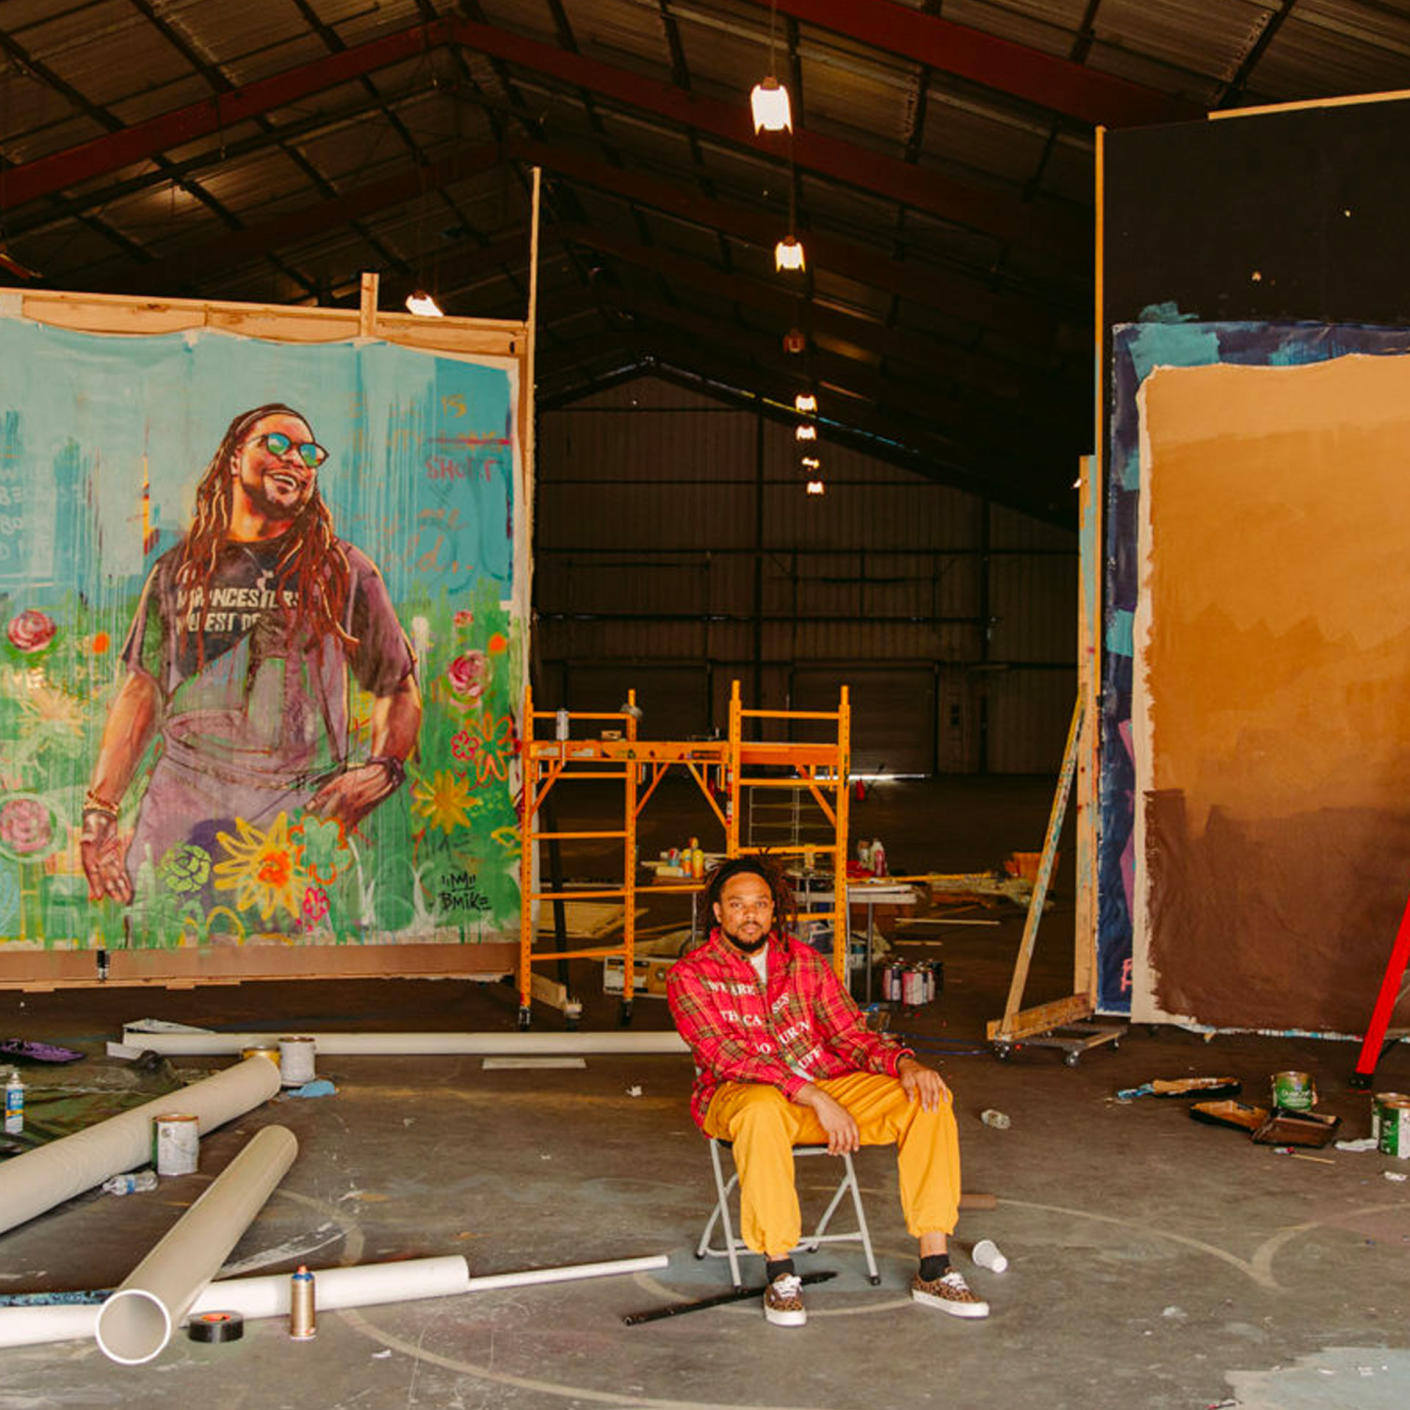 Artist at the forefront sitting on a chair in front of large paintings